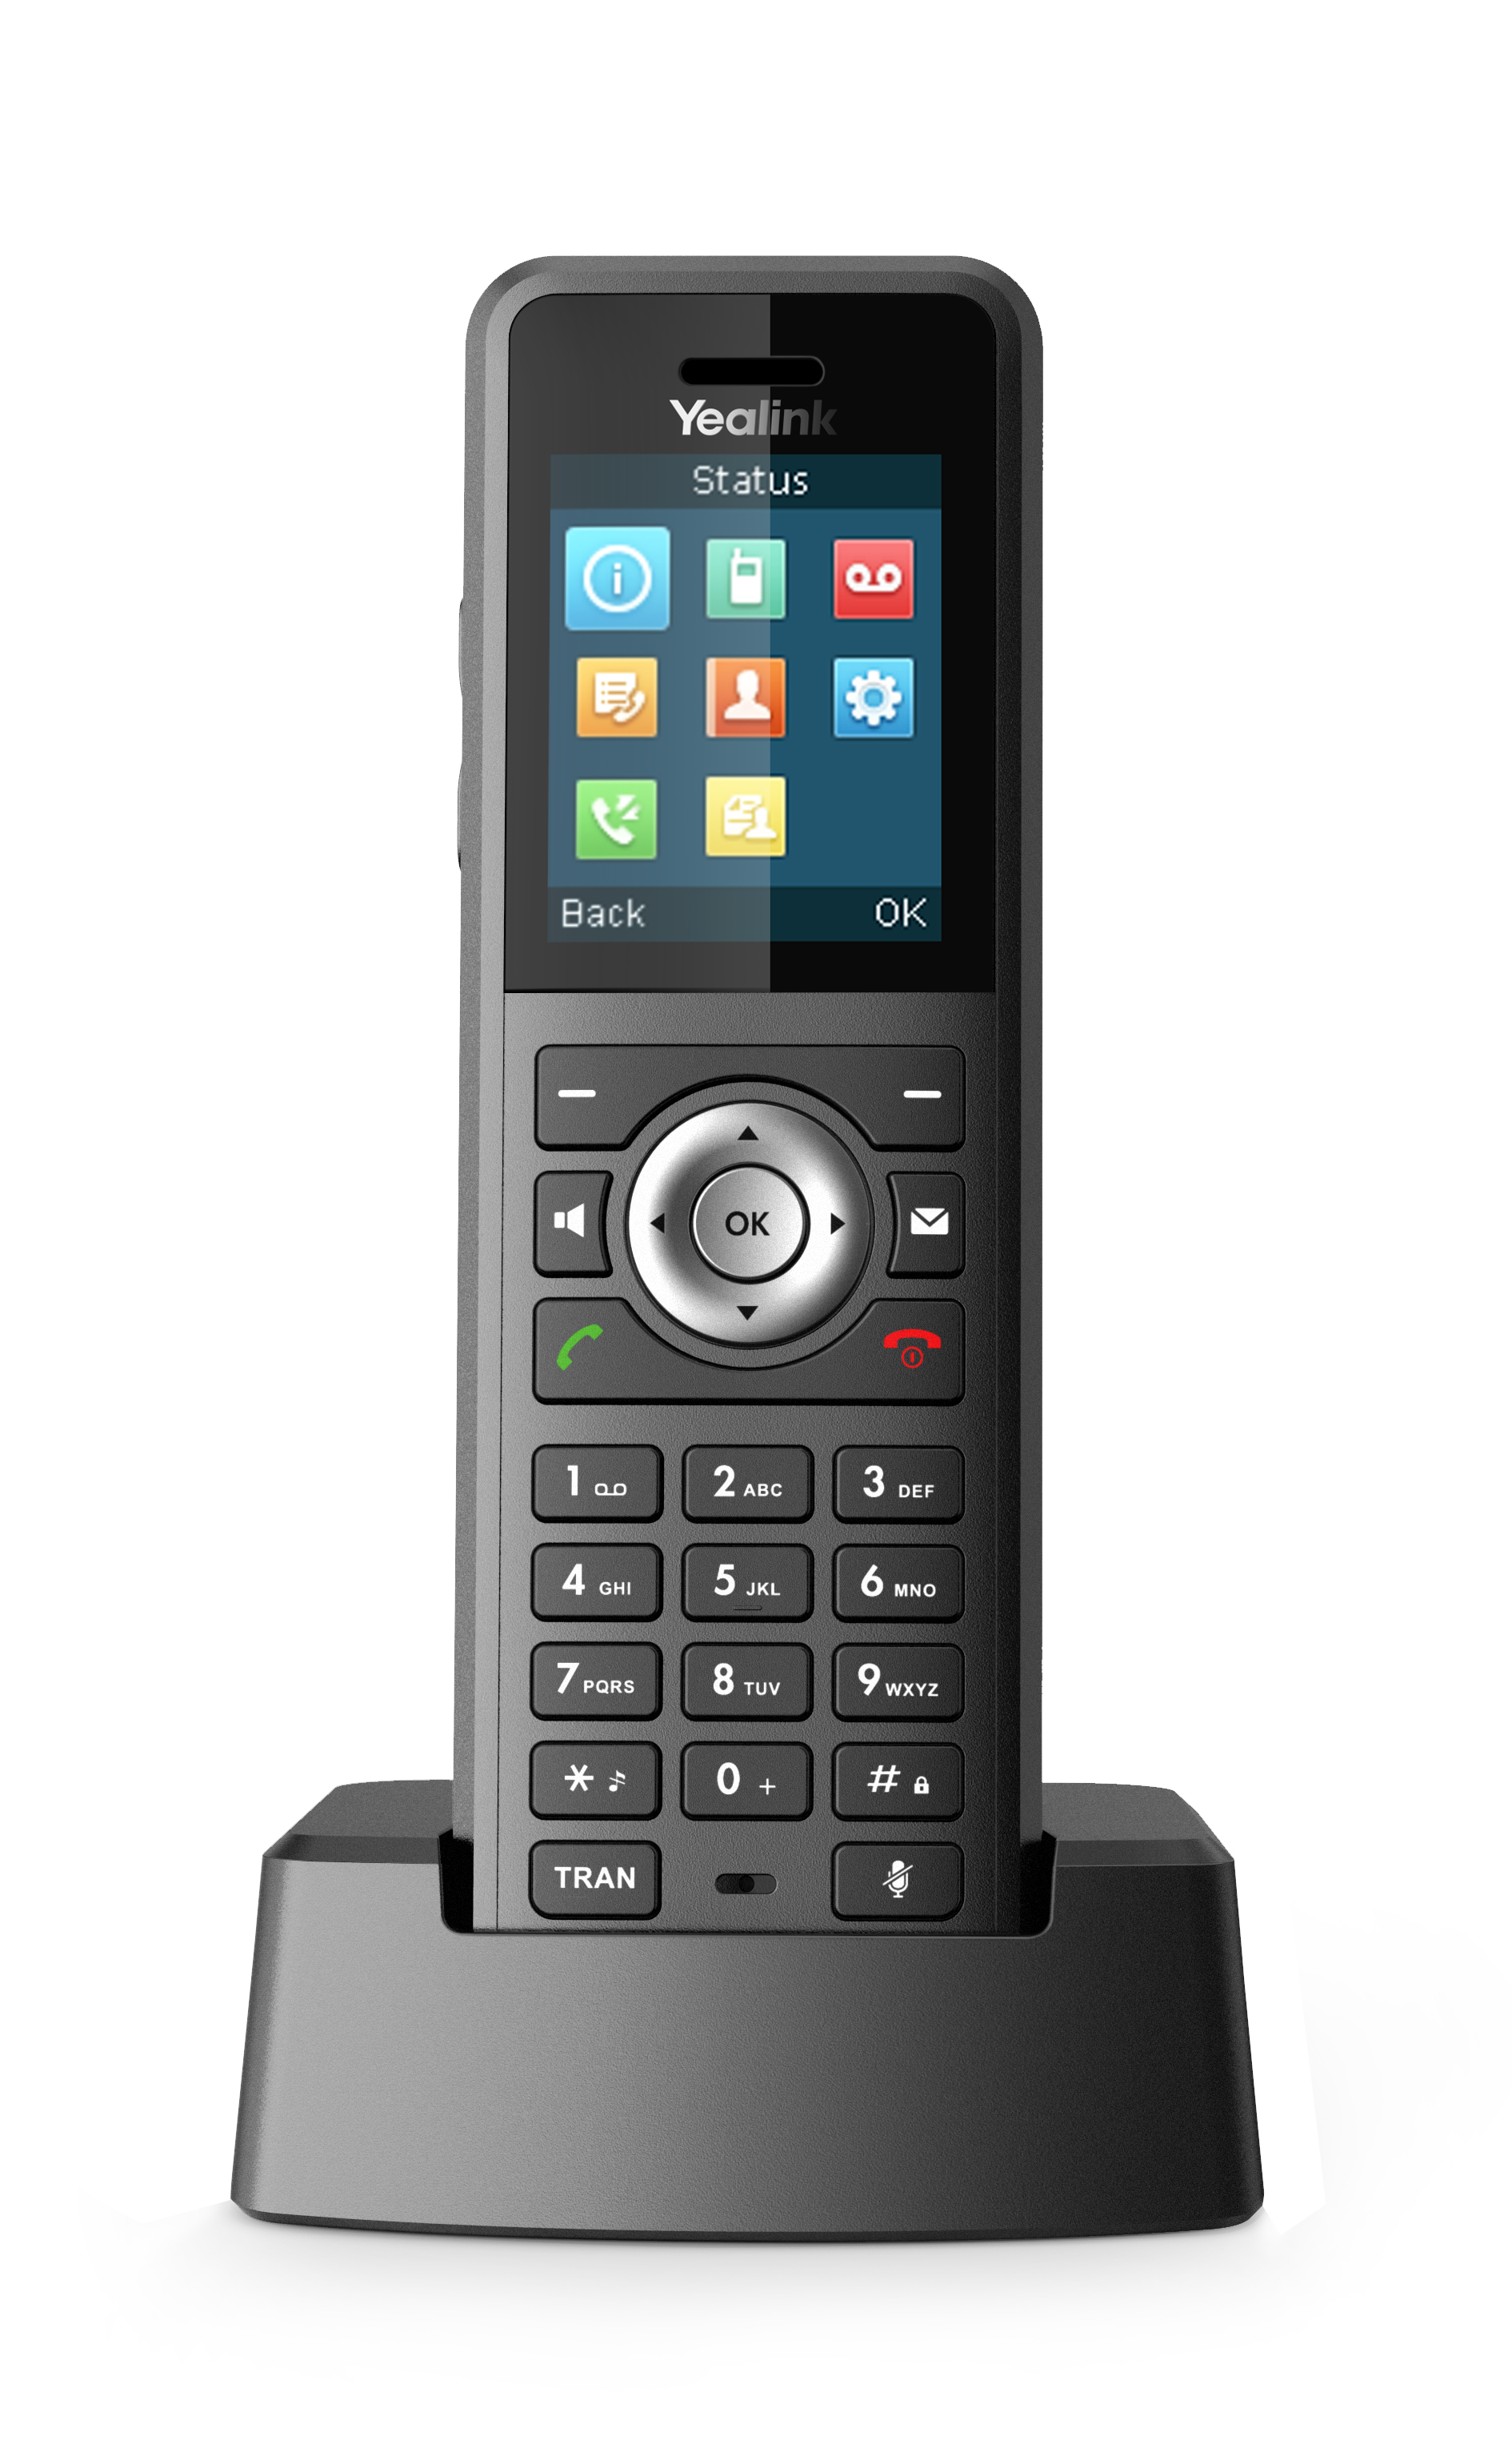 Photograph of Yealink W59R Handset